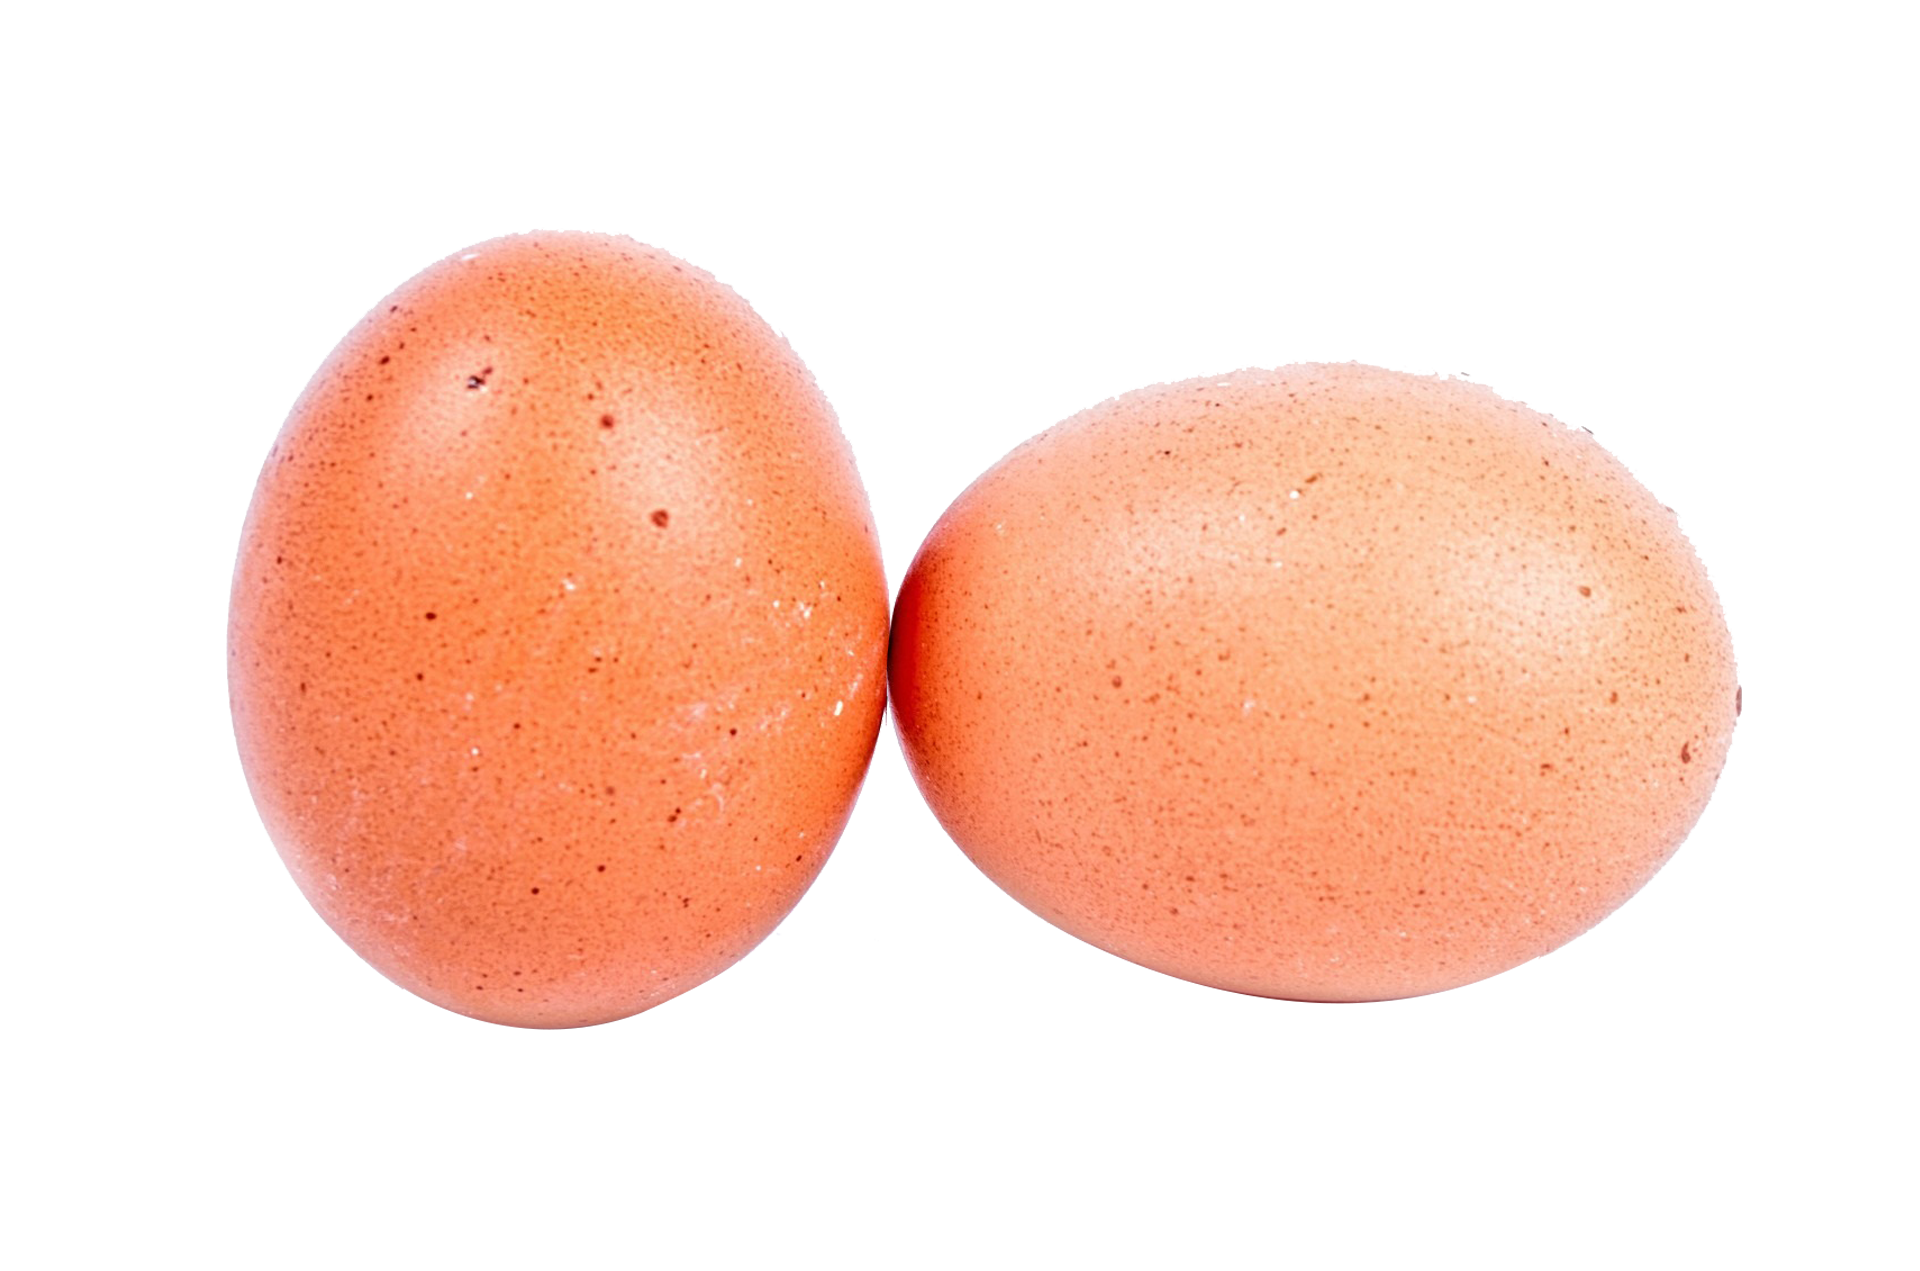 Two eggs png. Chicken meat egg food